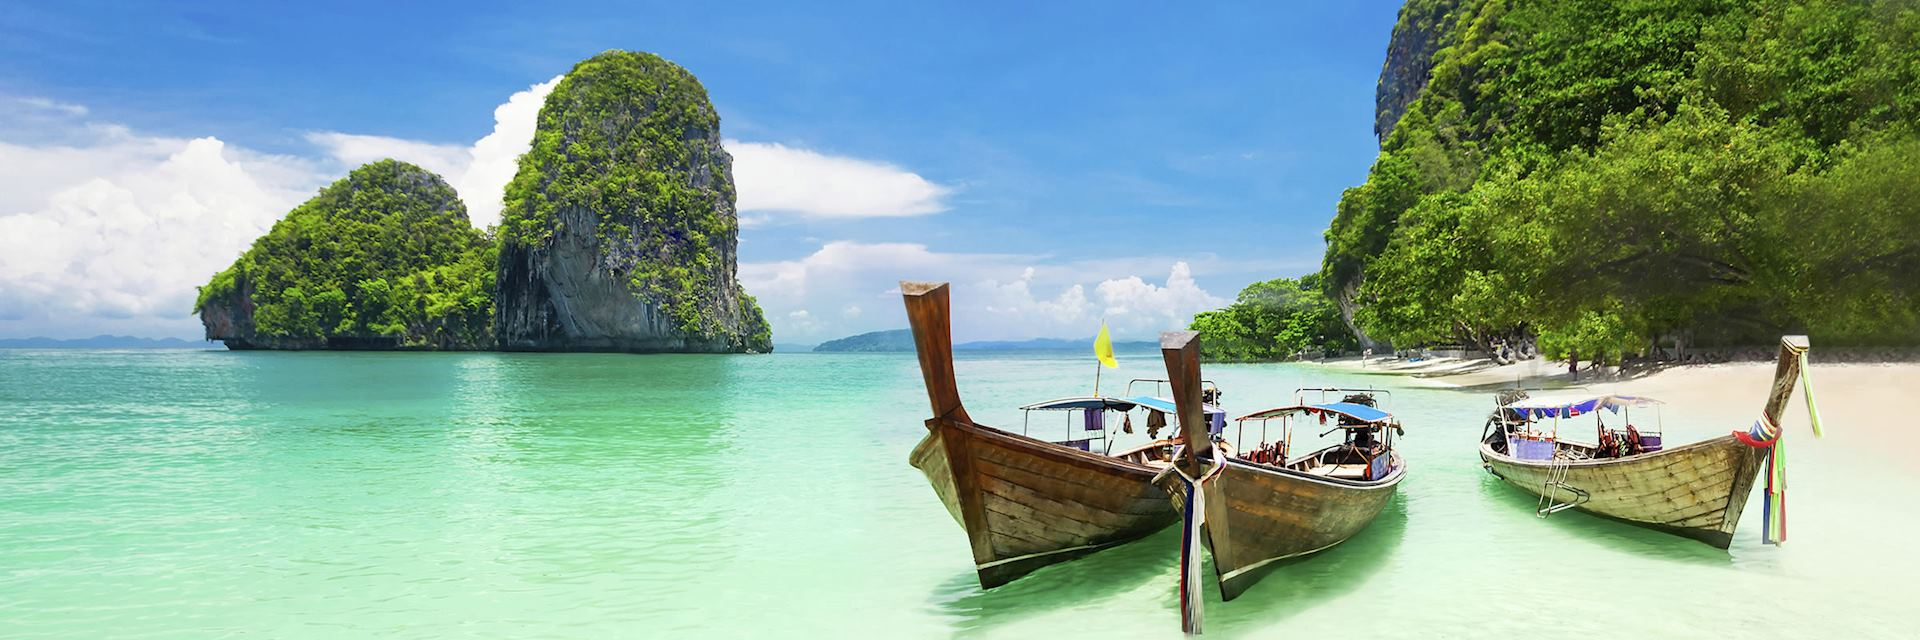 The white sand beaches of Krabi